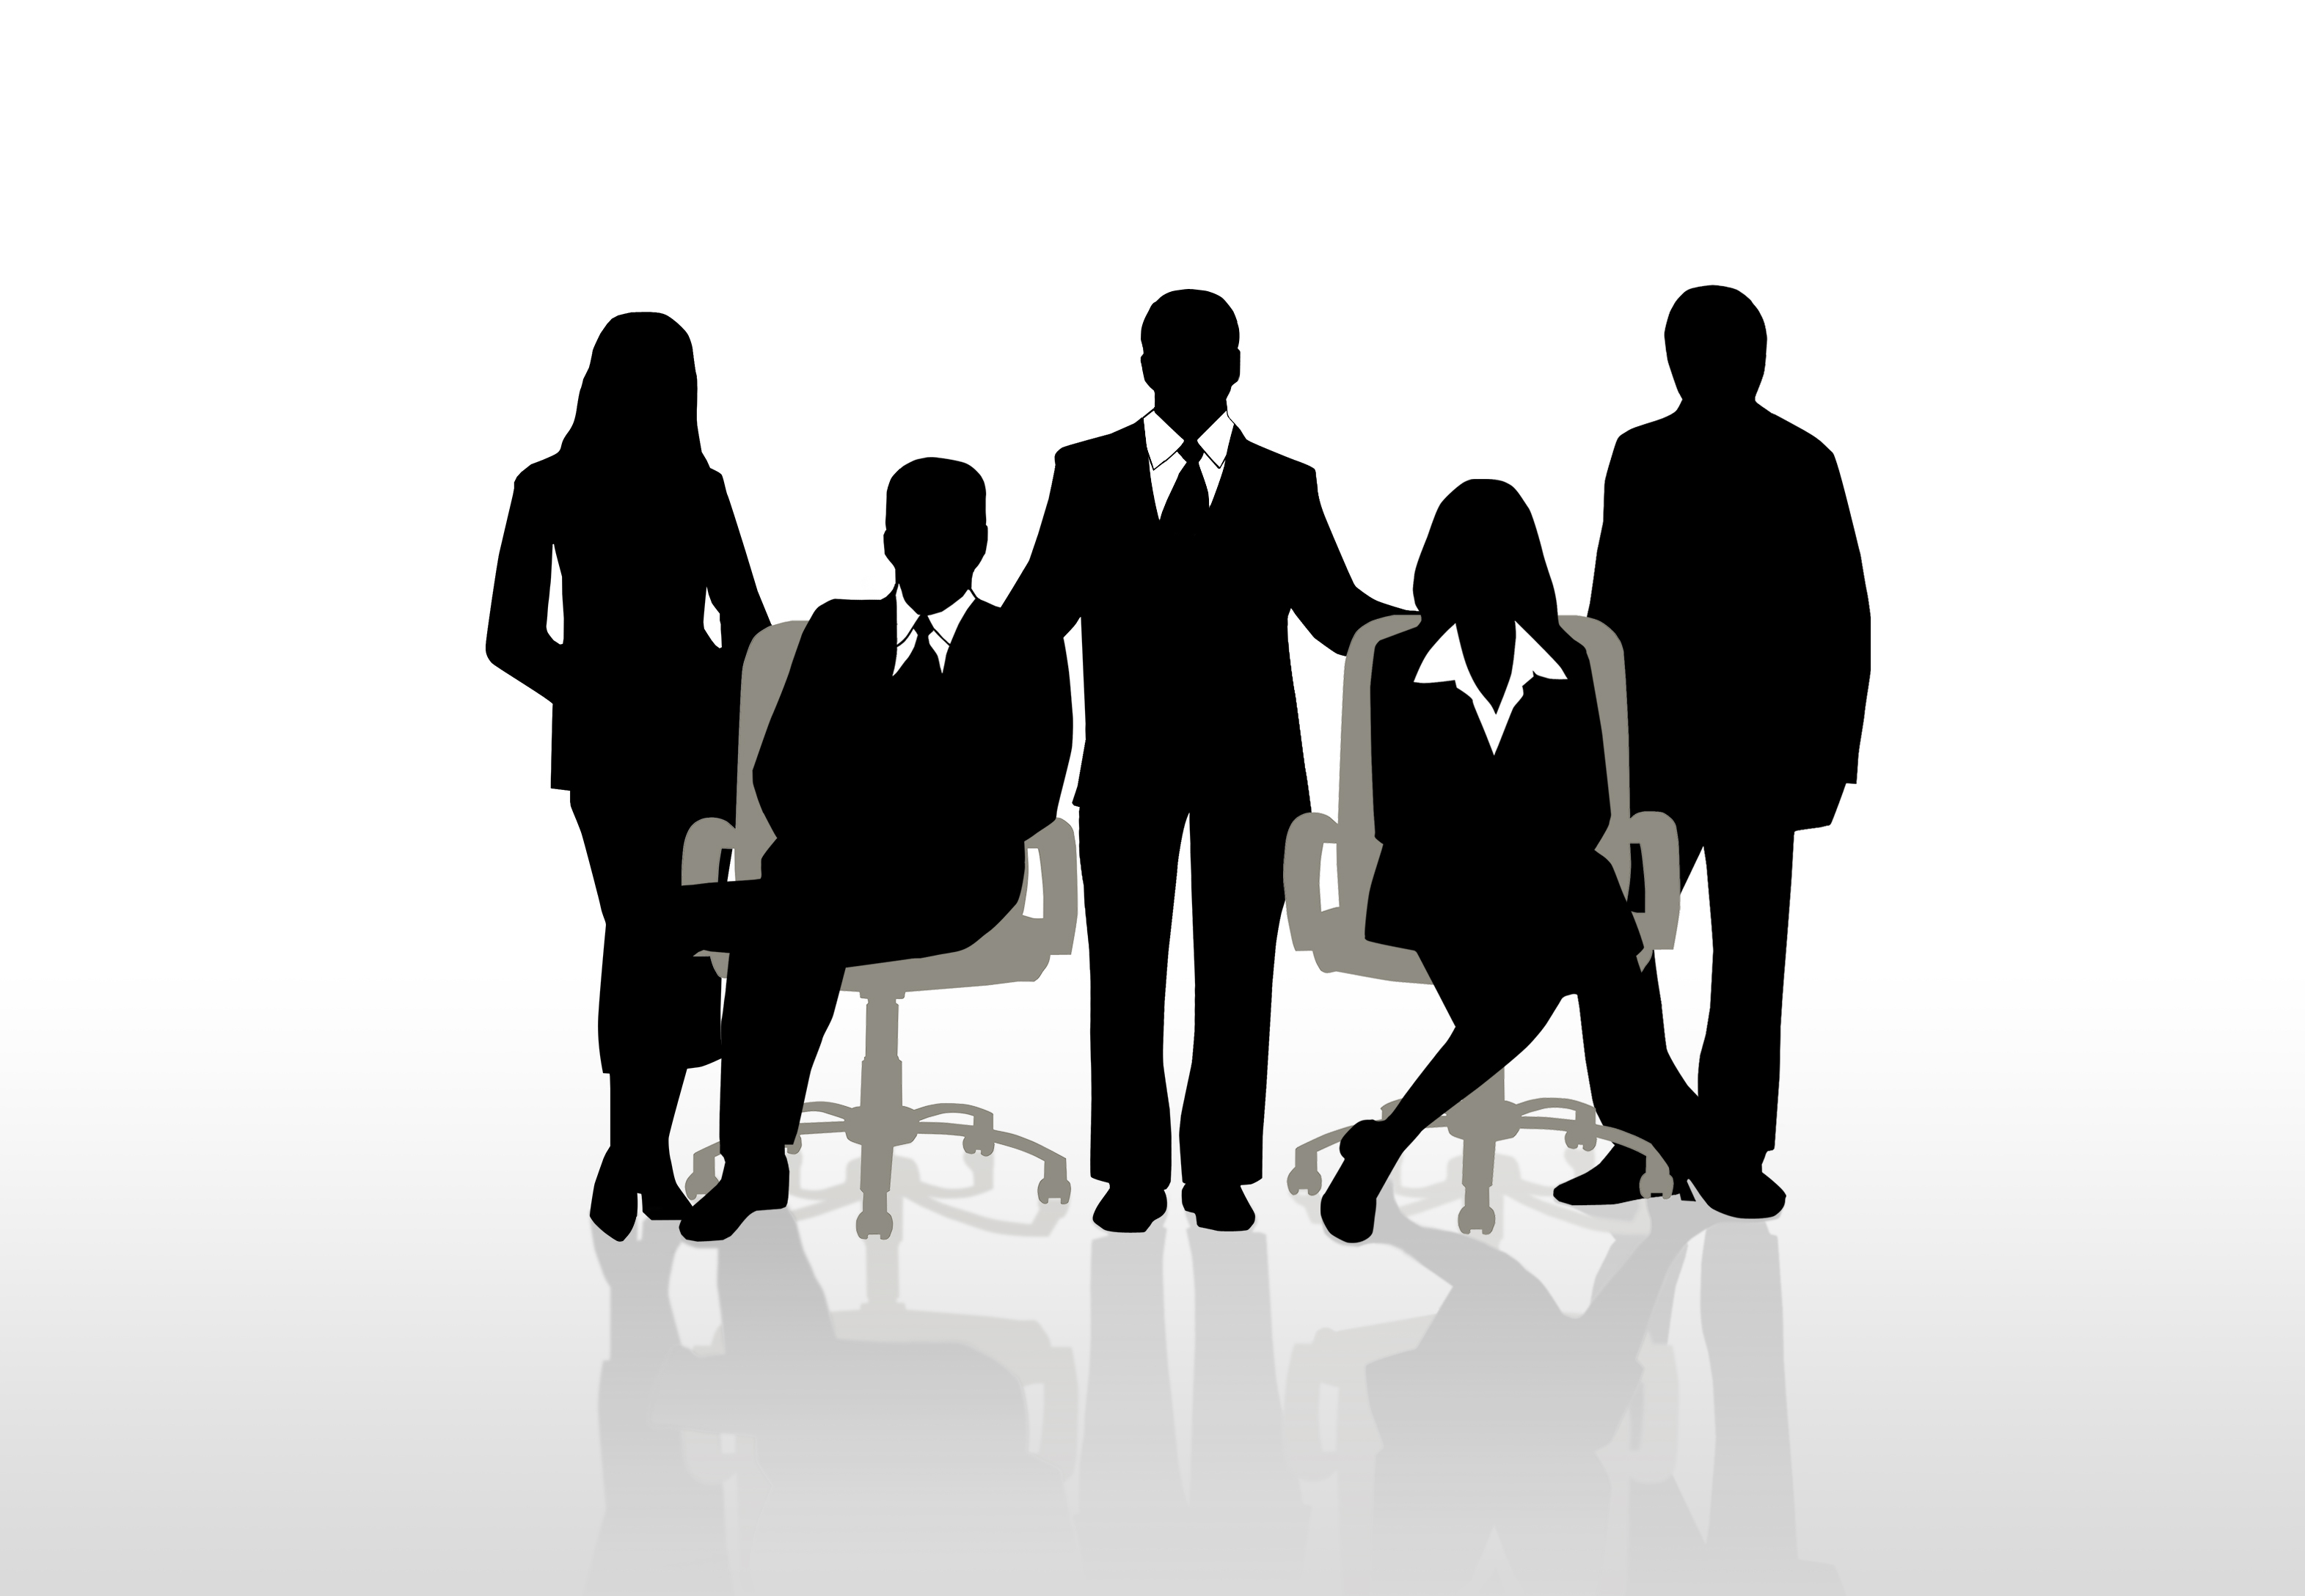 What makes a balanced board of directors?